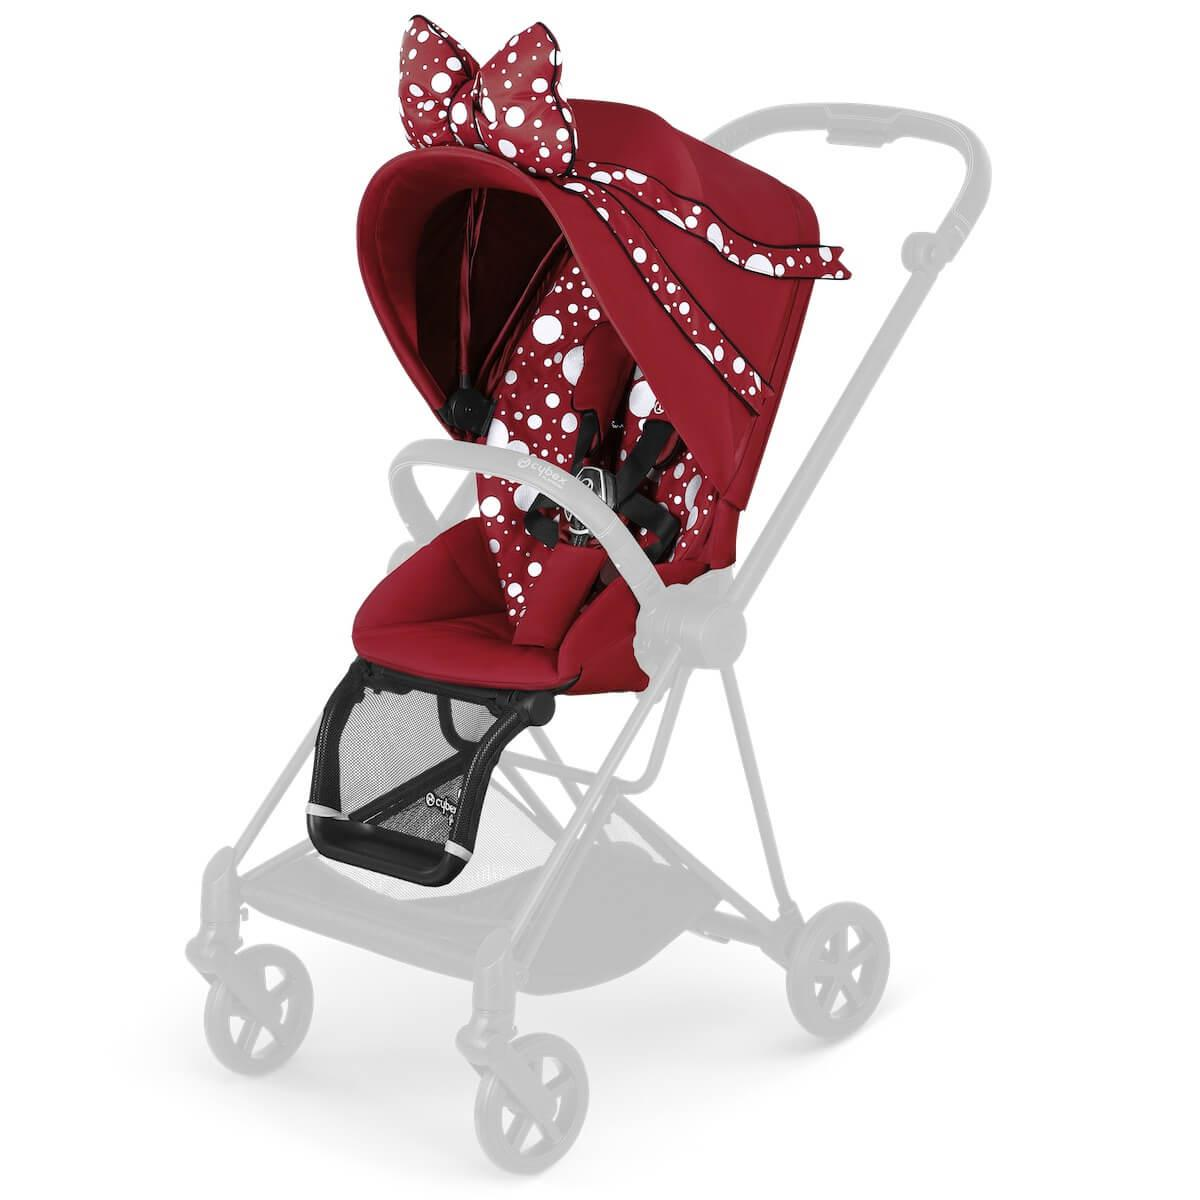 Assise-habillage poussette MIOS Cybex Petticoat Red dark red